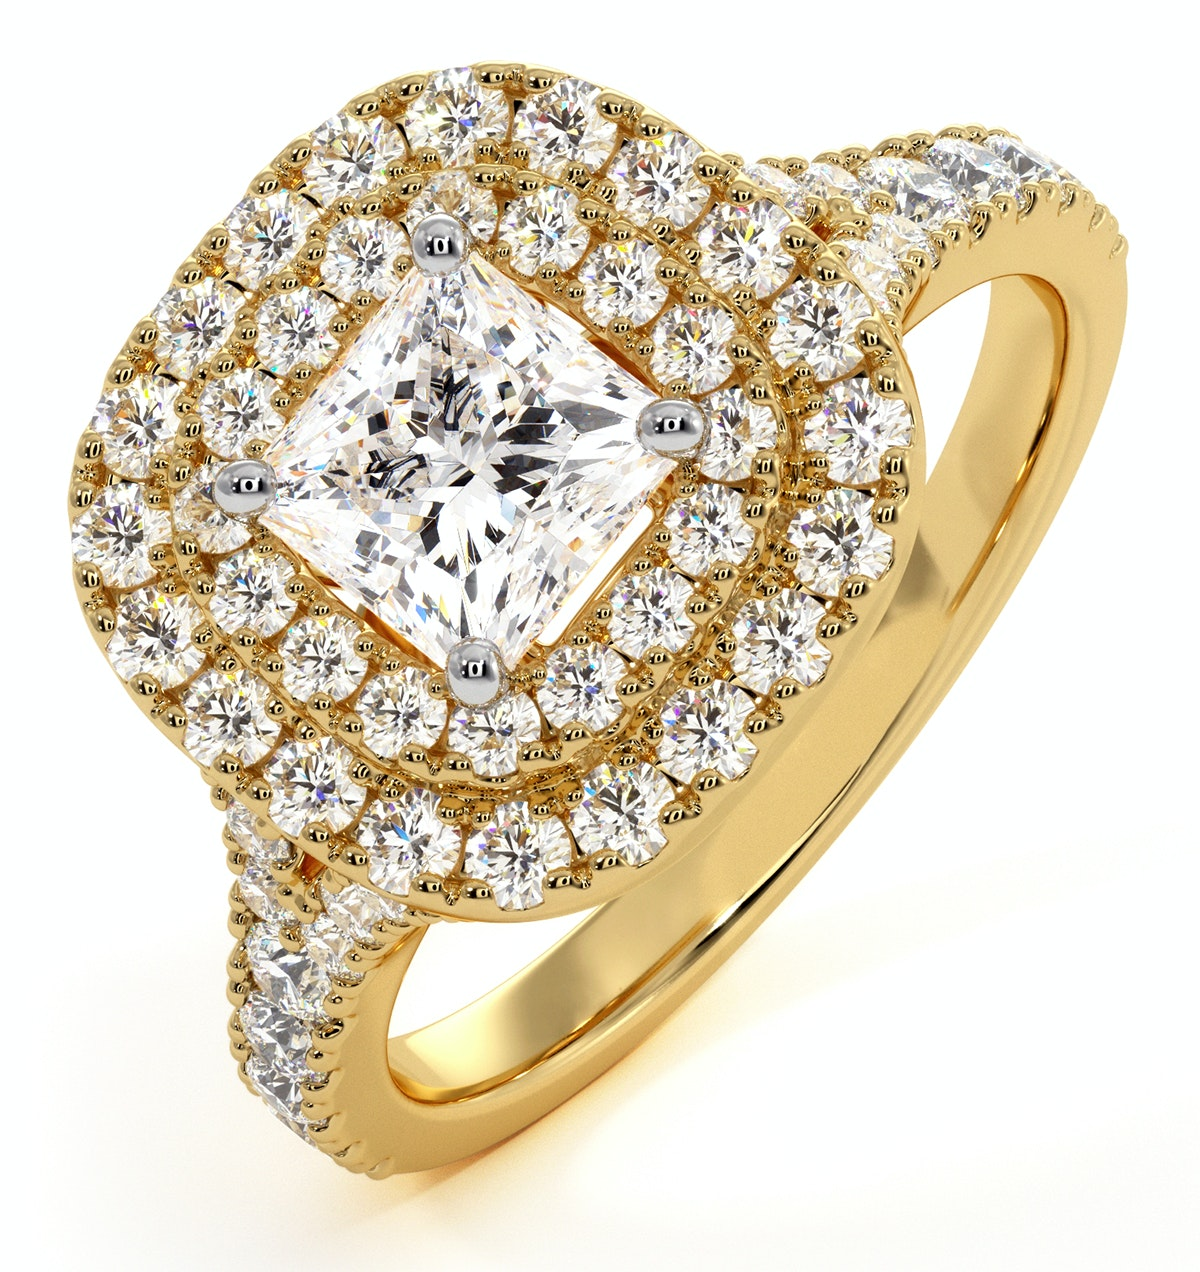 Cleopatra GIA Diamond Halo Engagement Ring in 18K Gold 1.45ct G/SI2